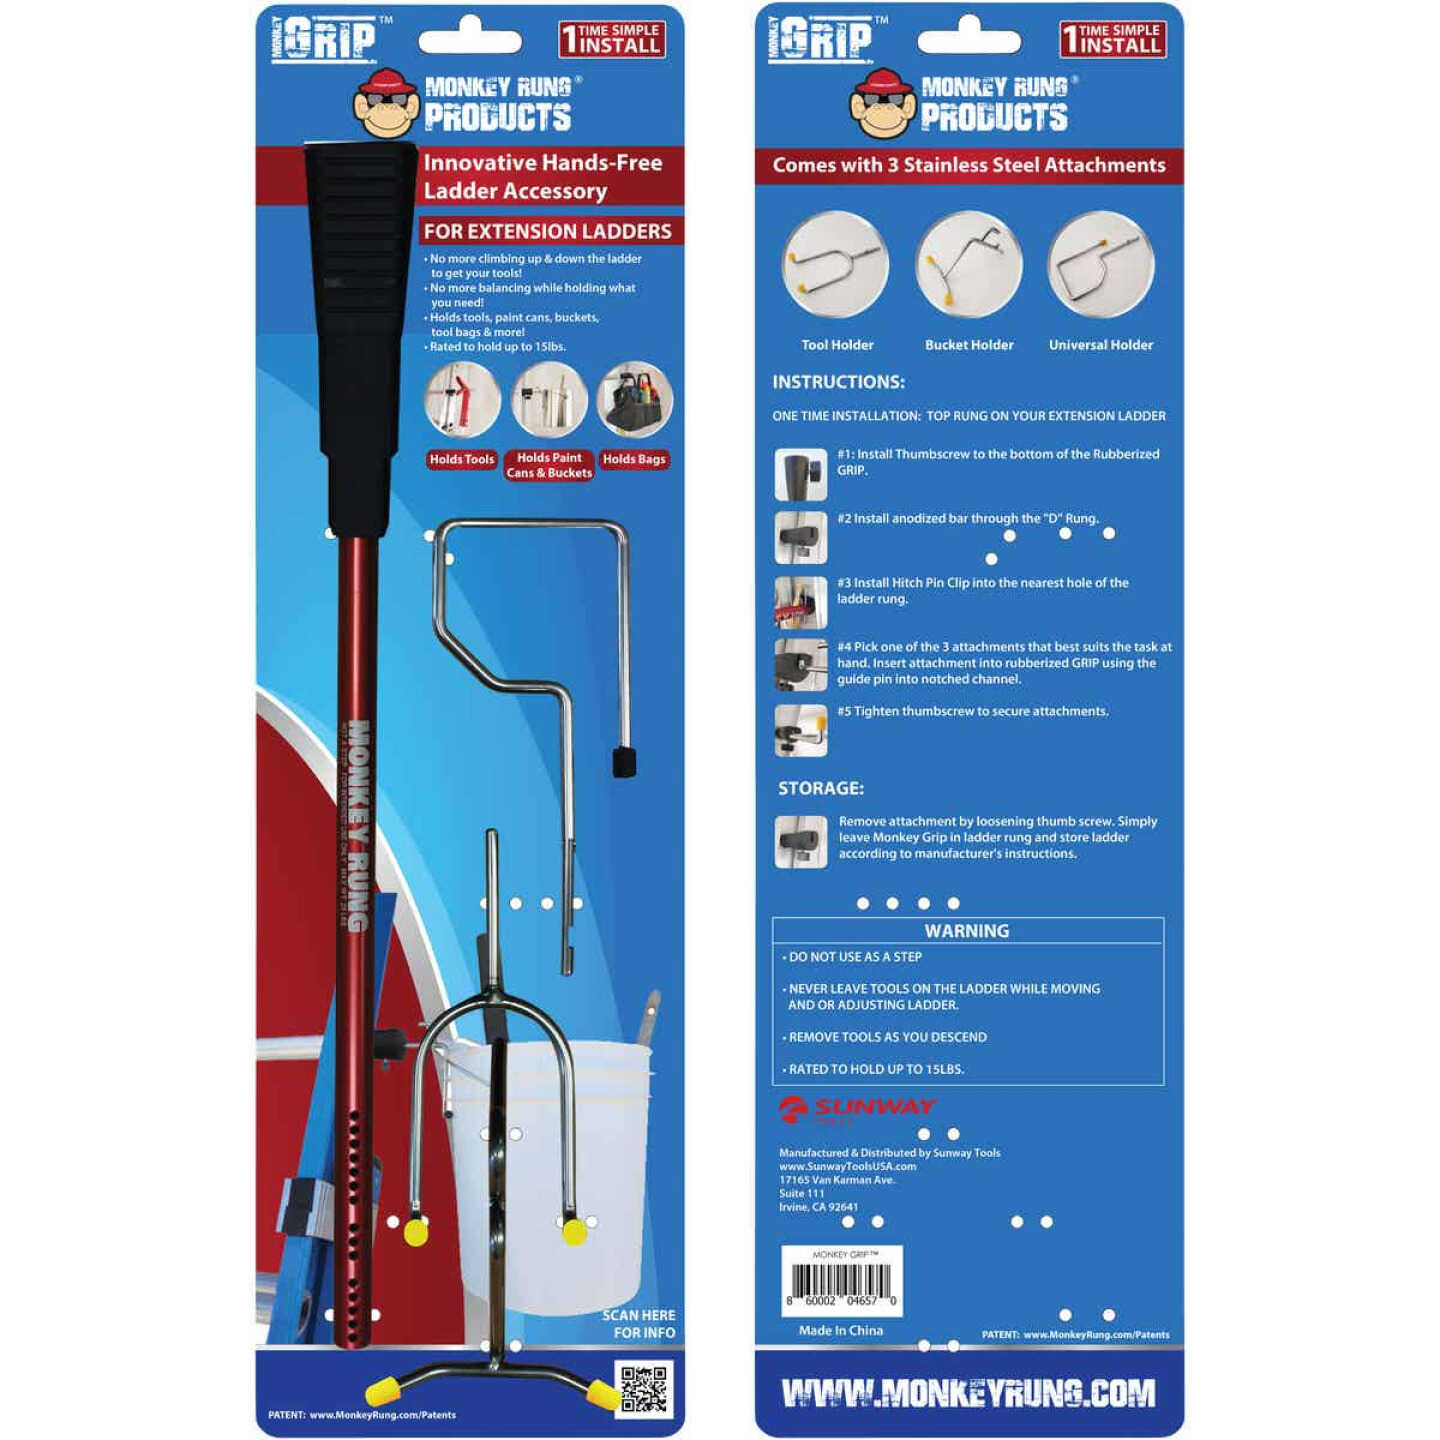 Monkey Rung Monkey Grip Hands-Free Ladder Accessory for Extension Ladder Image 1